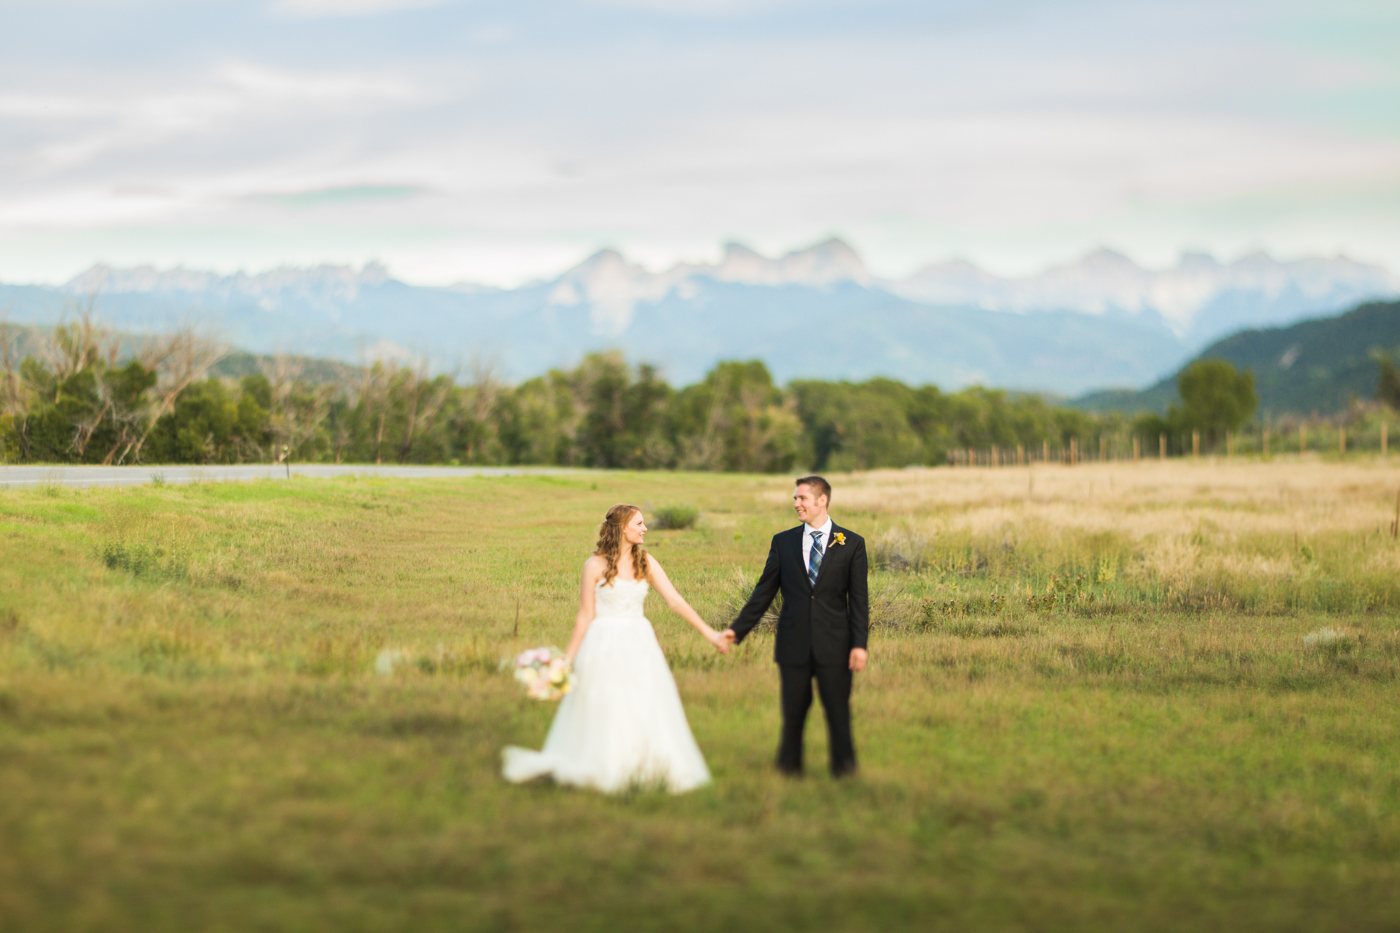 GrandJunctionWeddingPhotographer_MG_0364-2.jpg